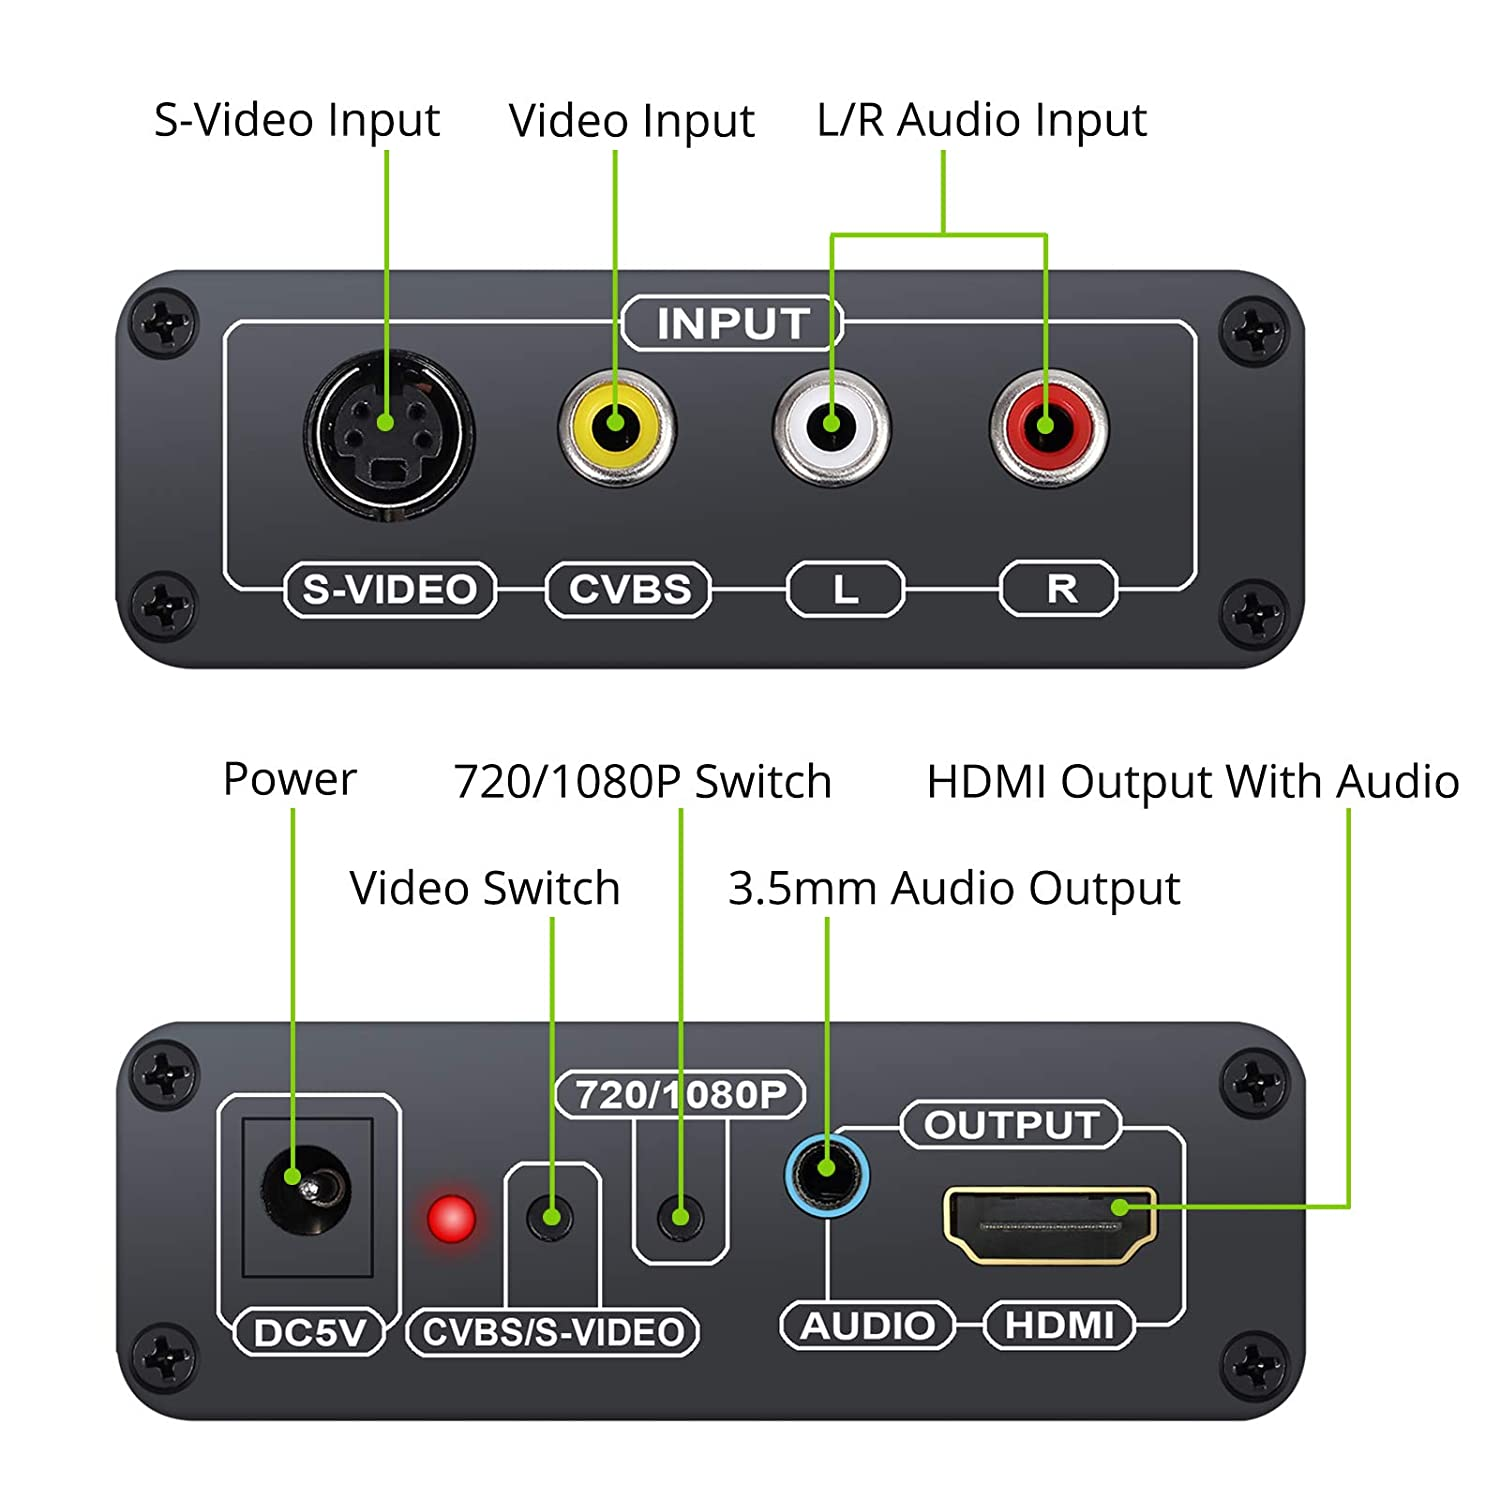 LiNKFOR 1080P 3RCA S-video to HDMI Converter and 3.5mm Port Output ...